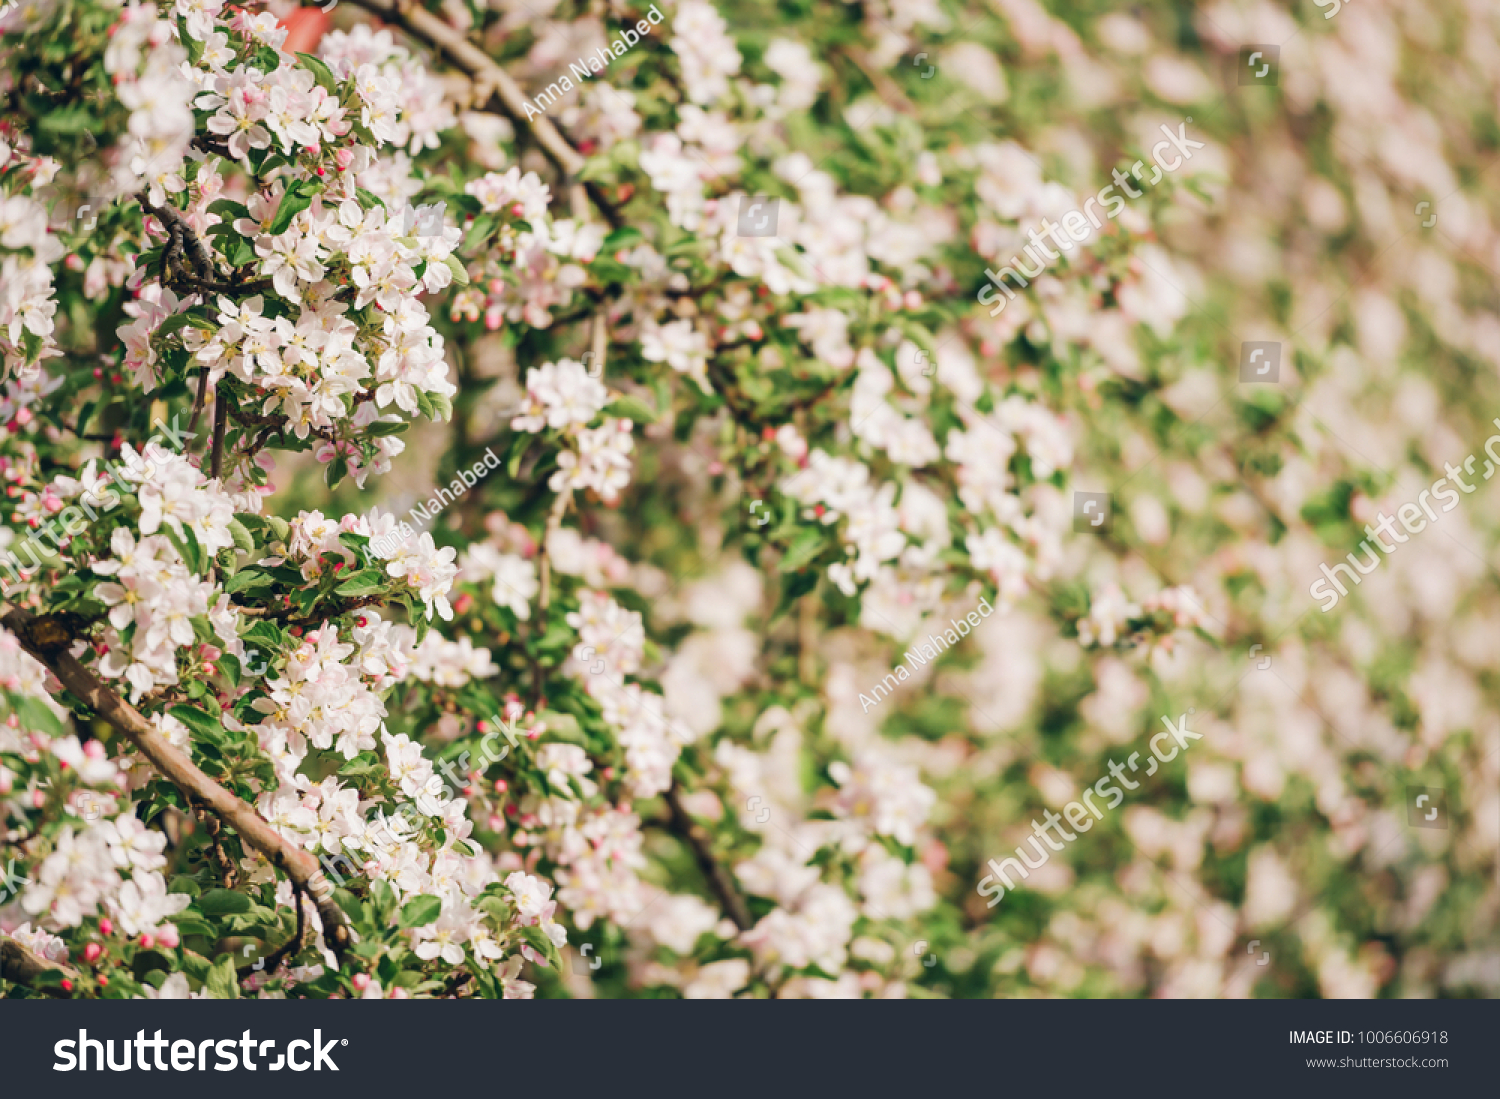 Blooming Apple Tree Large White Flowers Beautiful Stock Photo